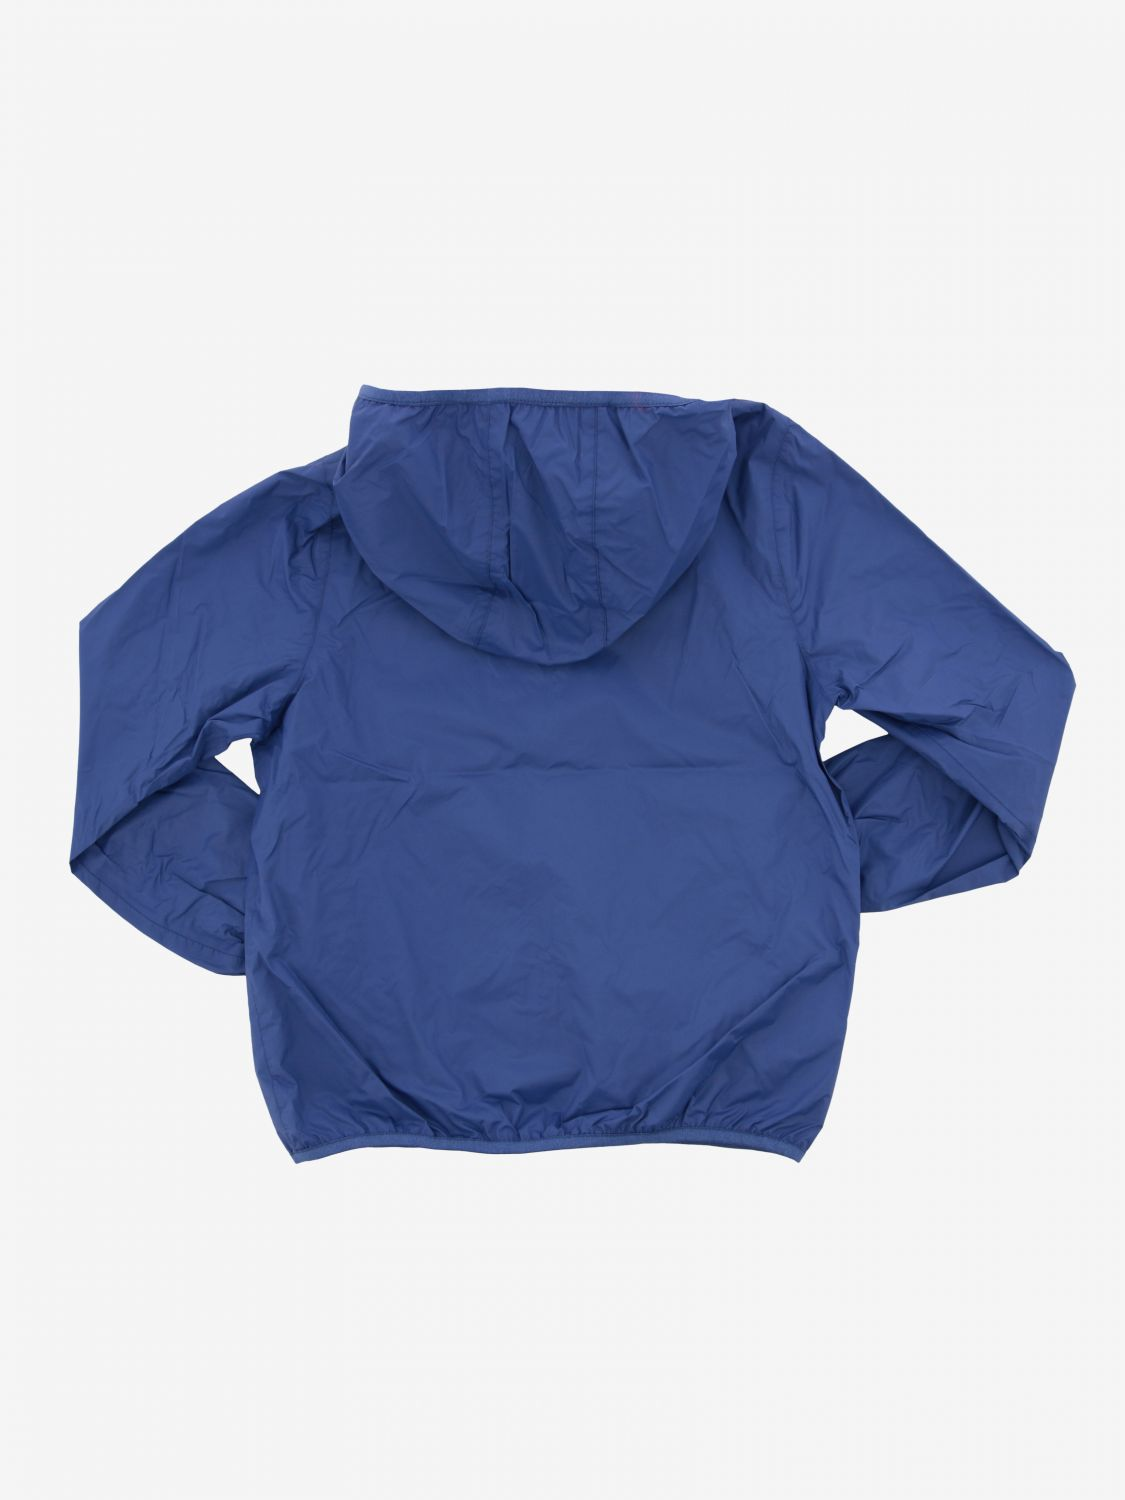 Jacques K-way reversible jacket with hood blue 2